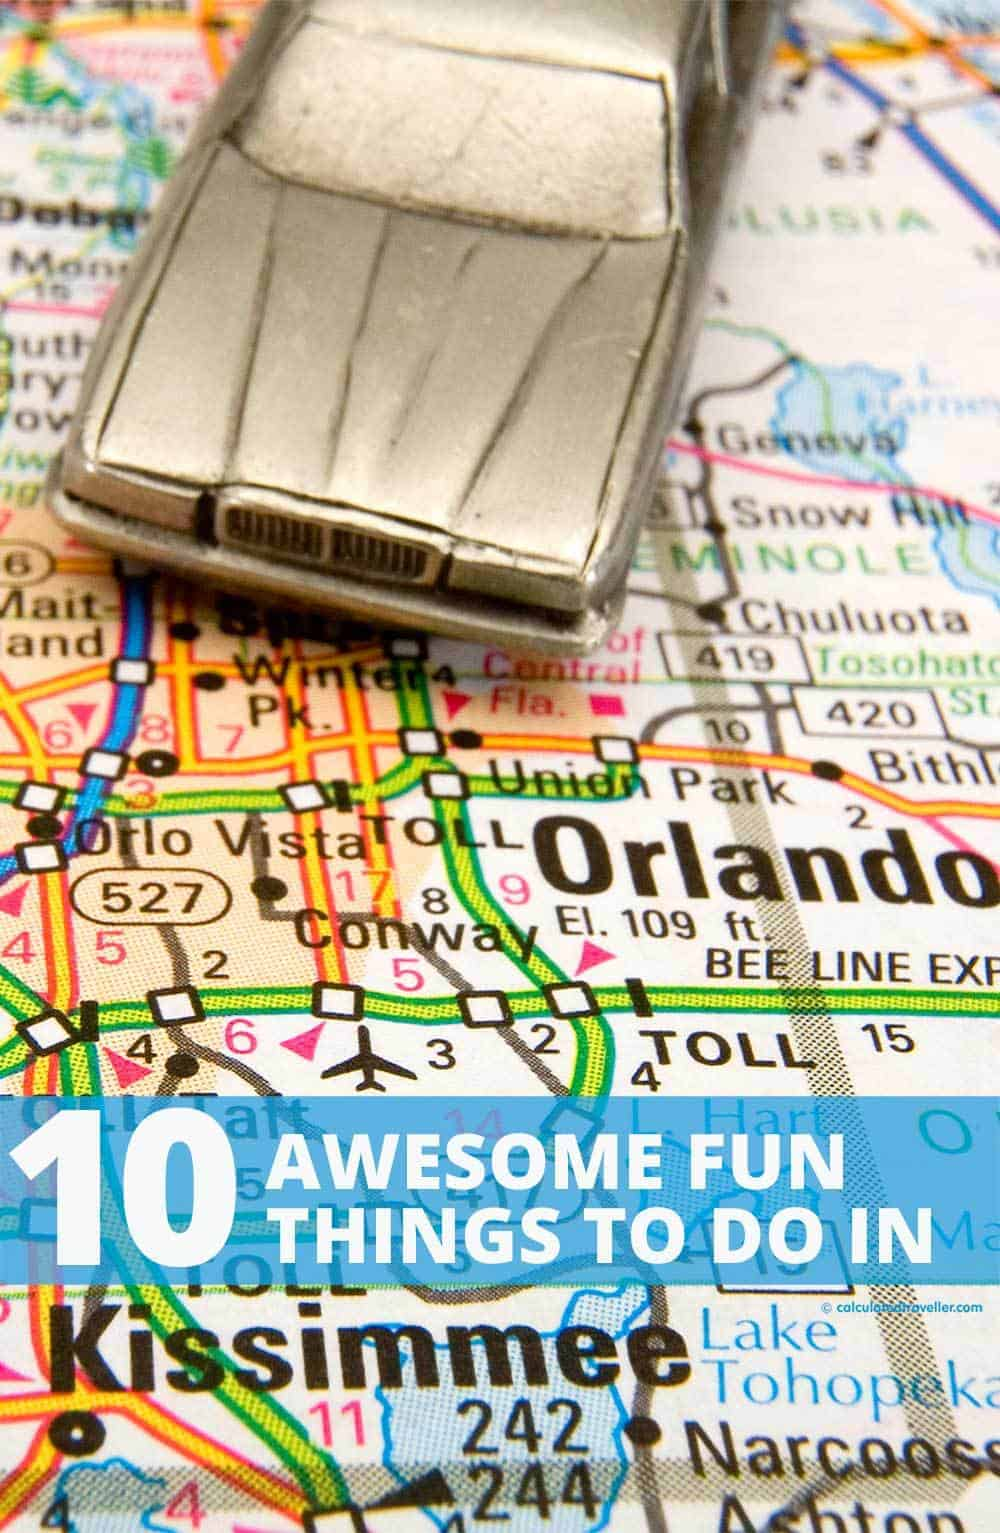 10 Awesome Fun Things to do Kissimmee Florida by Calculated Traveller #Kissimmee #Orlando #Florida #Family #Travel #ThingsToDo